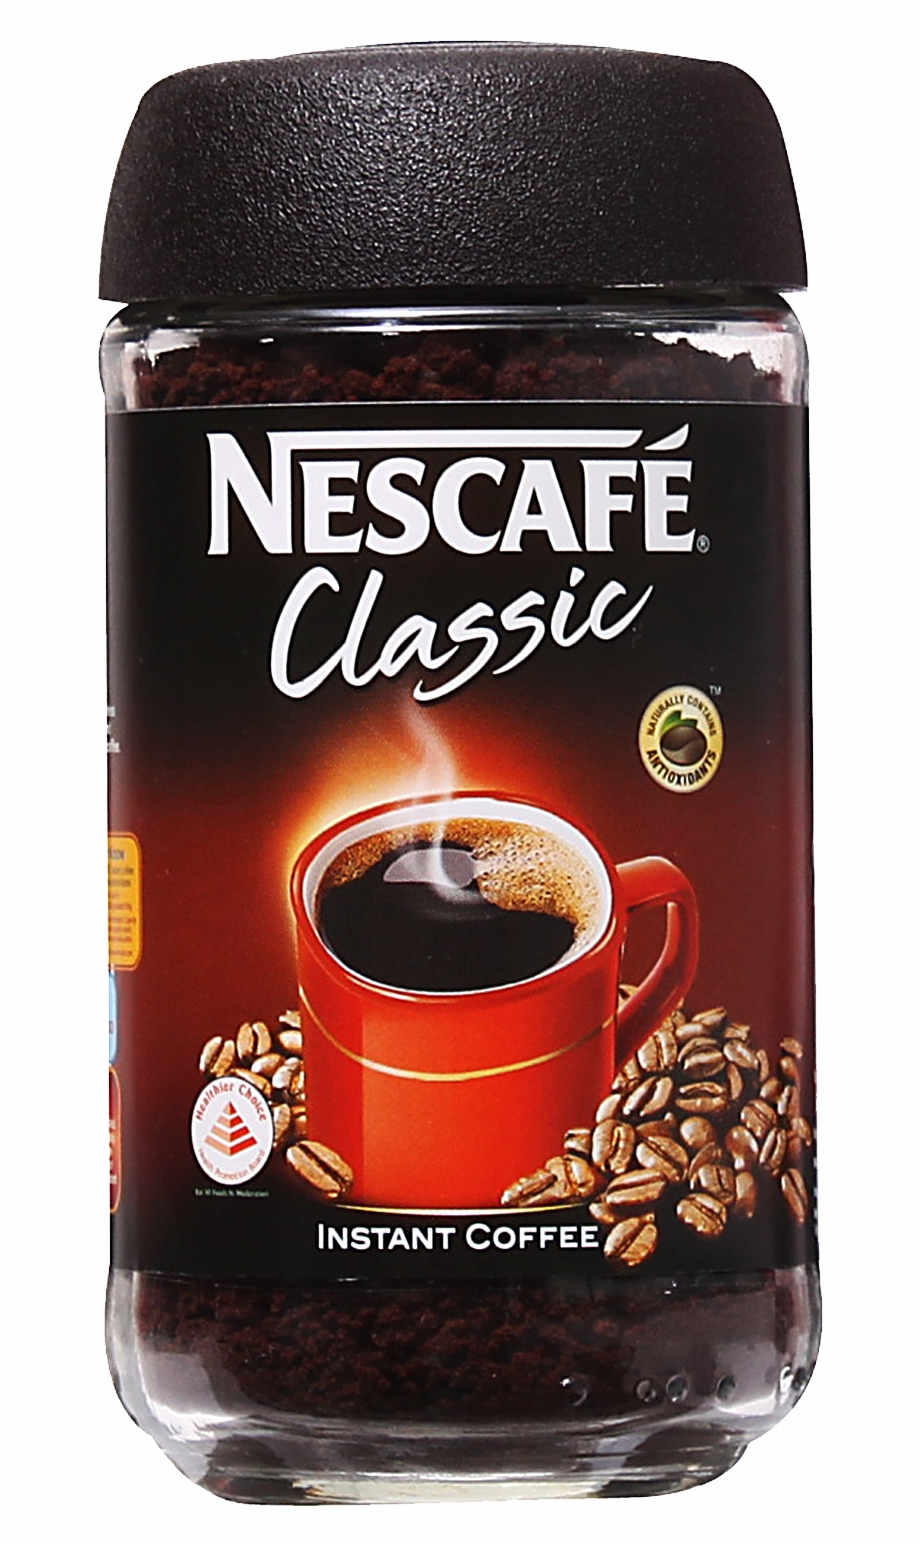 Download Nescafe Png File.